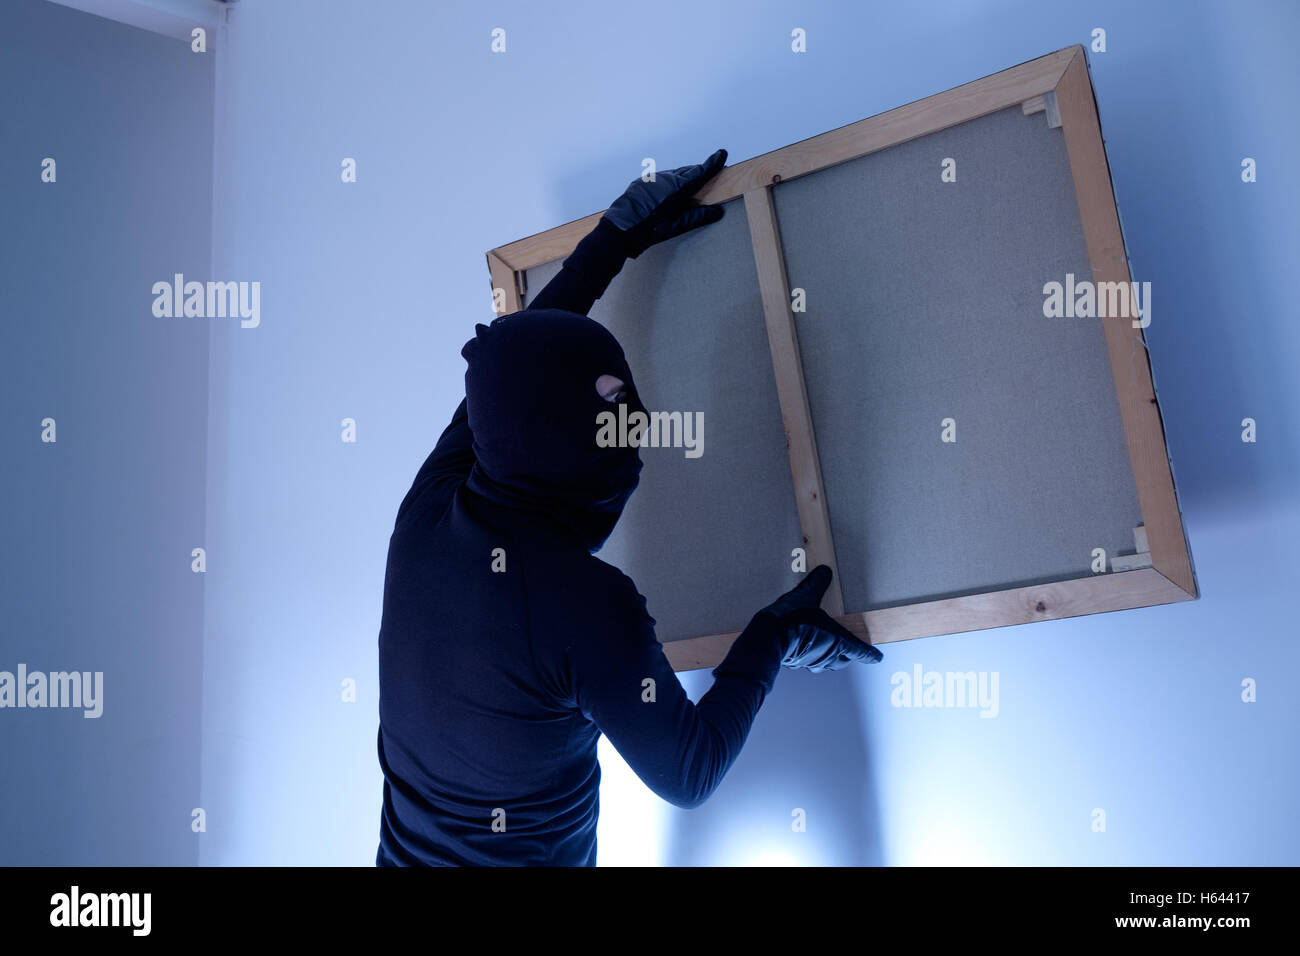 Thief inside home  stealing a painting from the wall - Stock Image